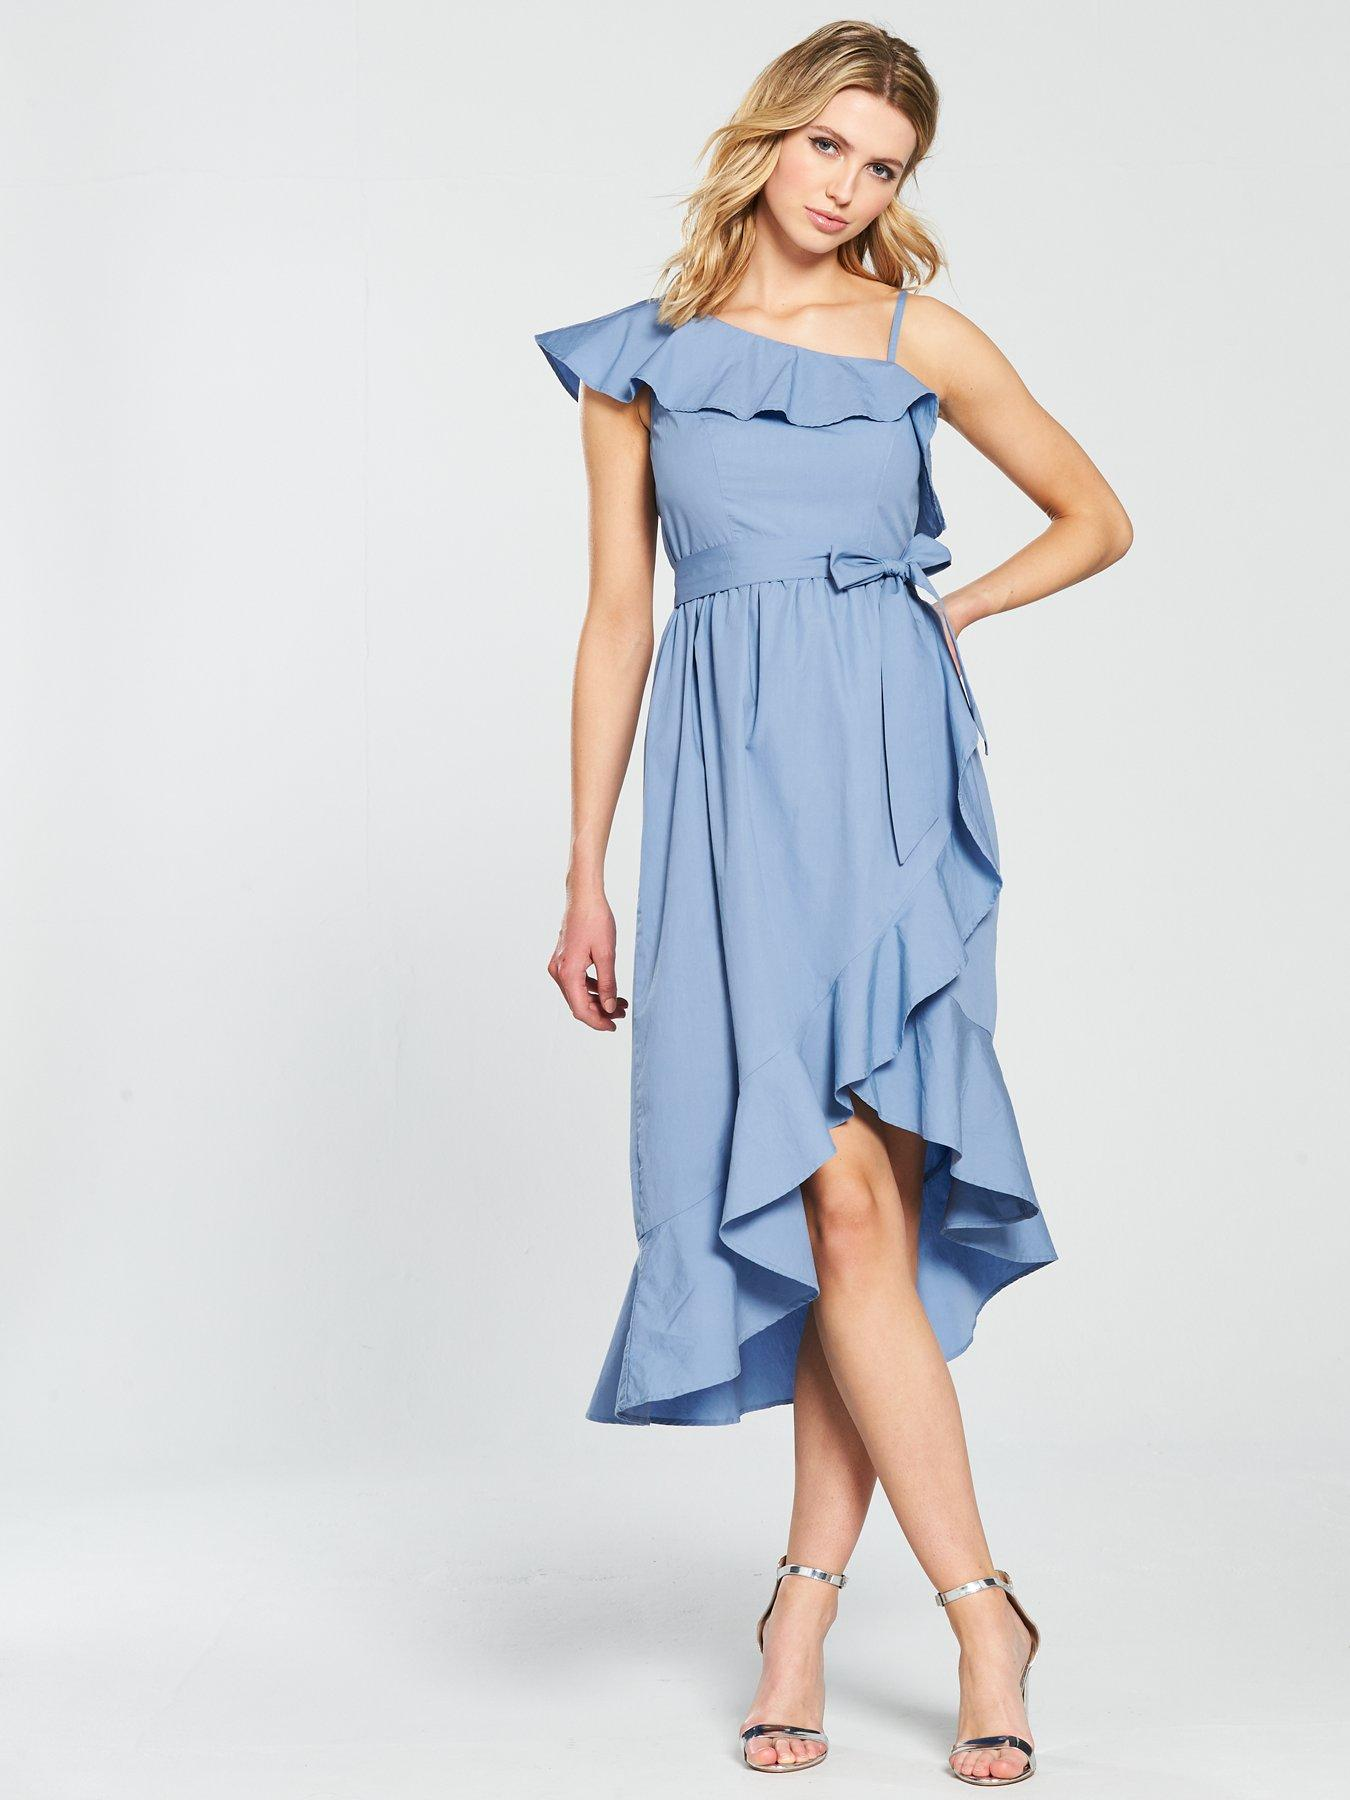 Blue Dresses UK